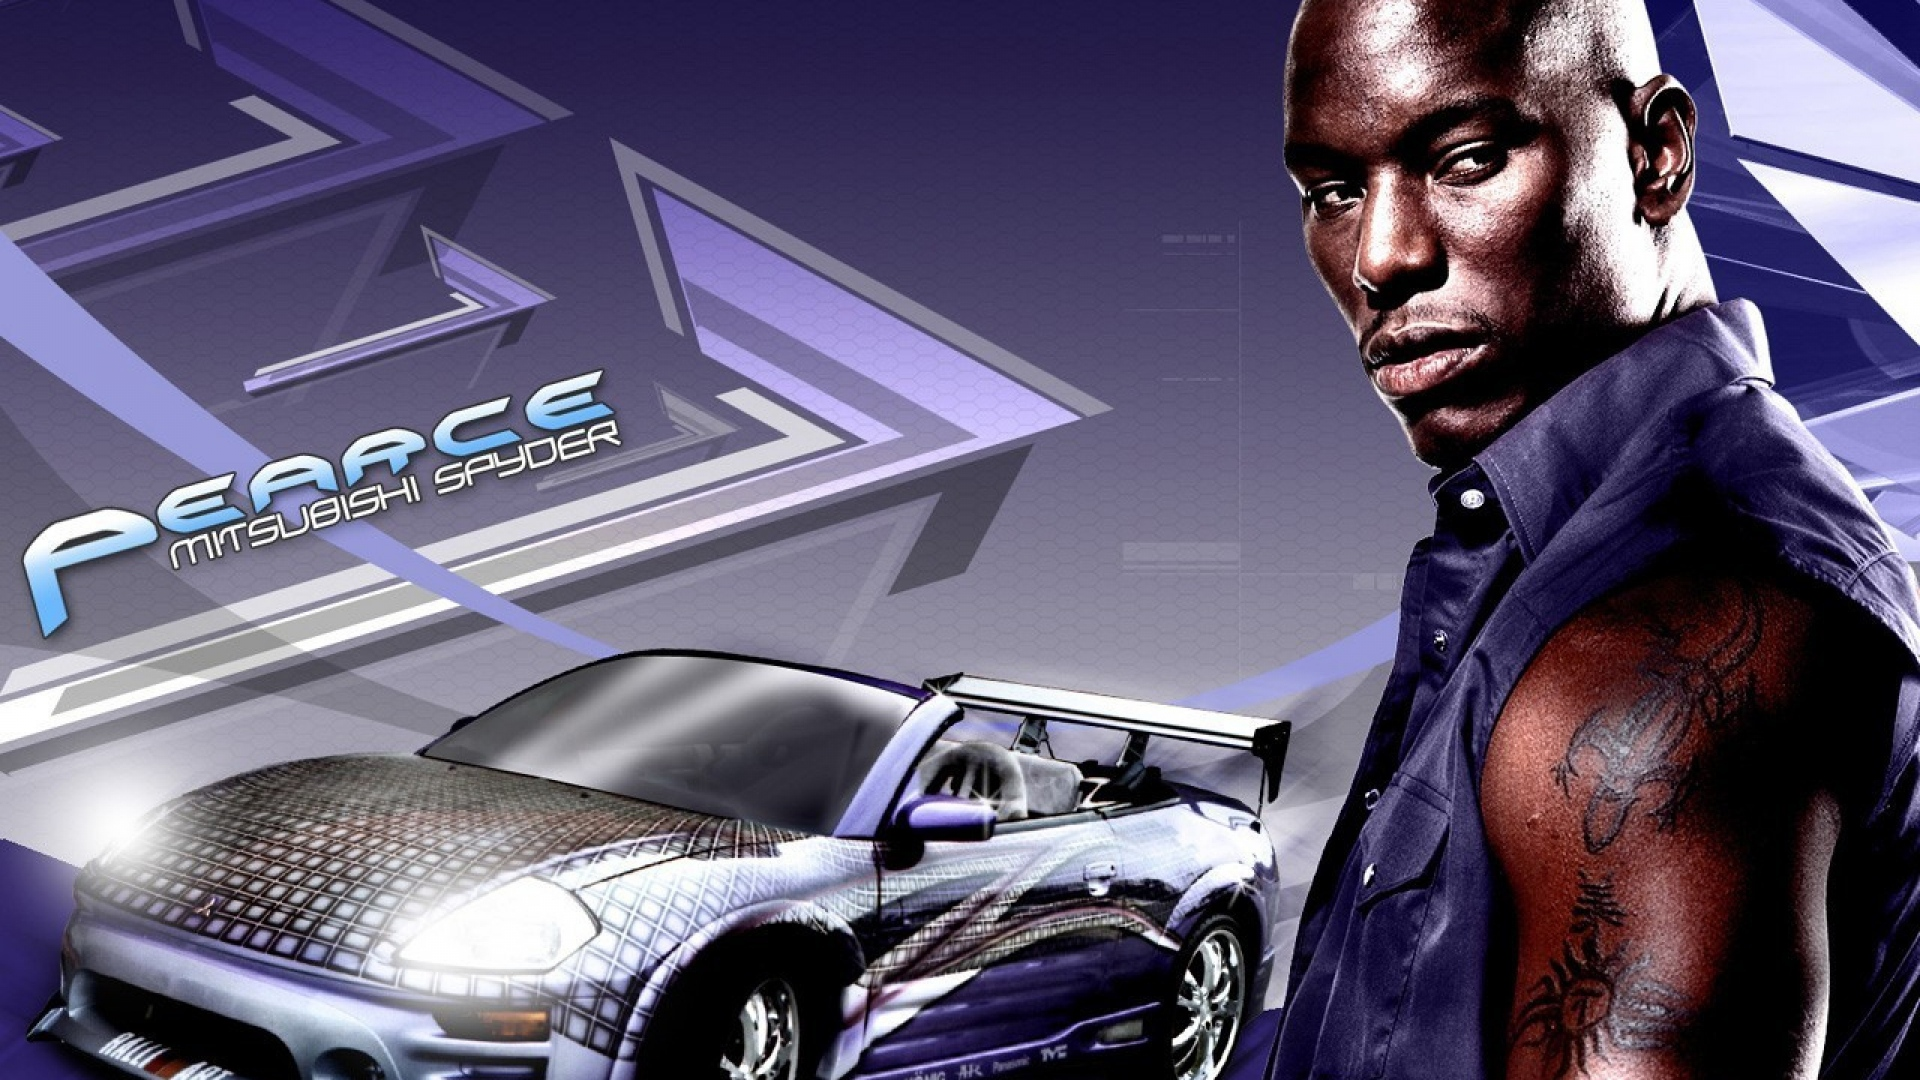 Fast And Furious 6 Cars Hd Wallpaper Fast And Furious Backgrounds Free Download Pixelstalk Net